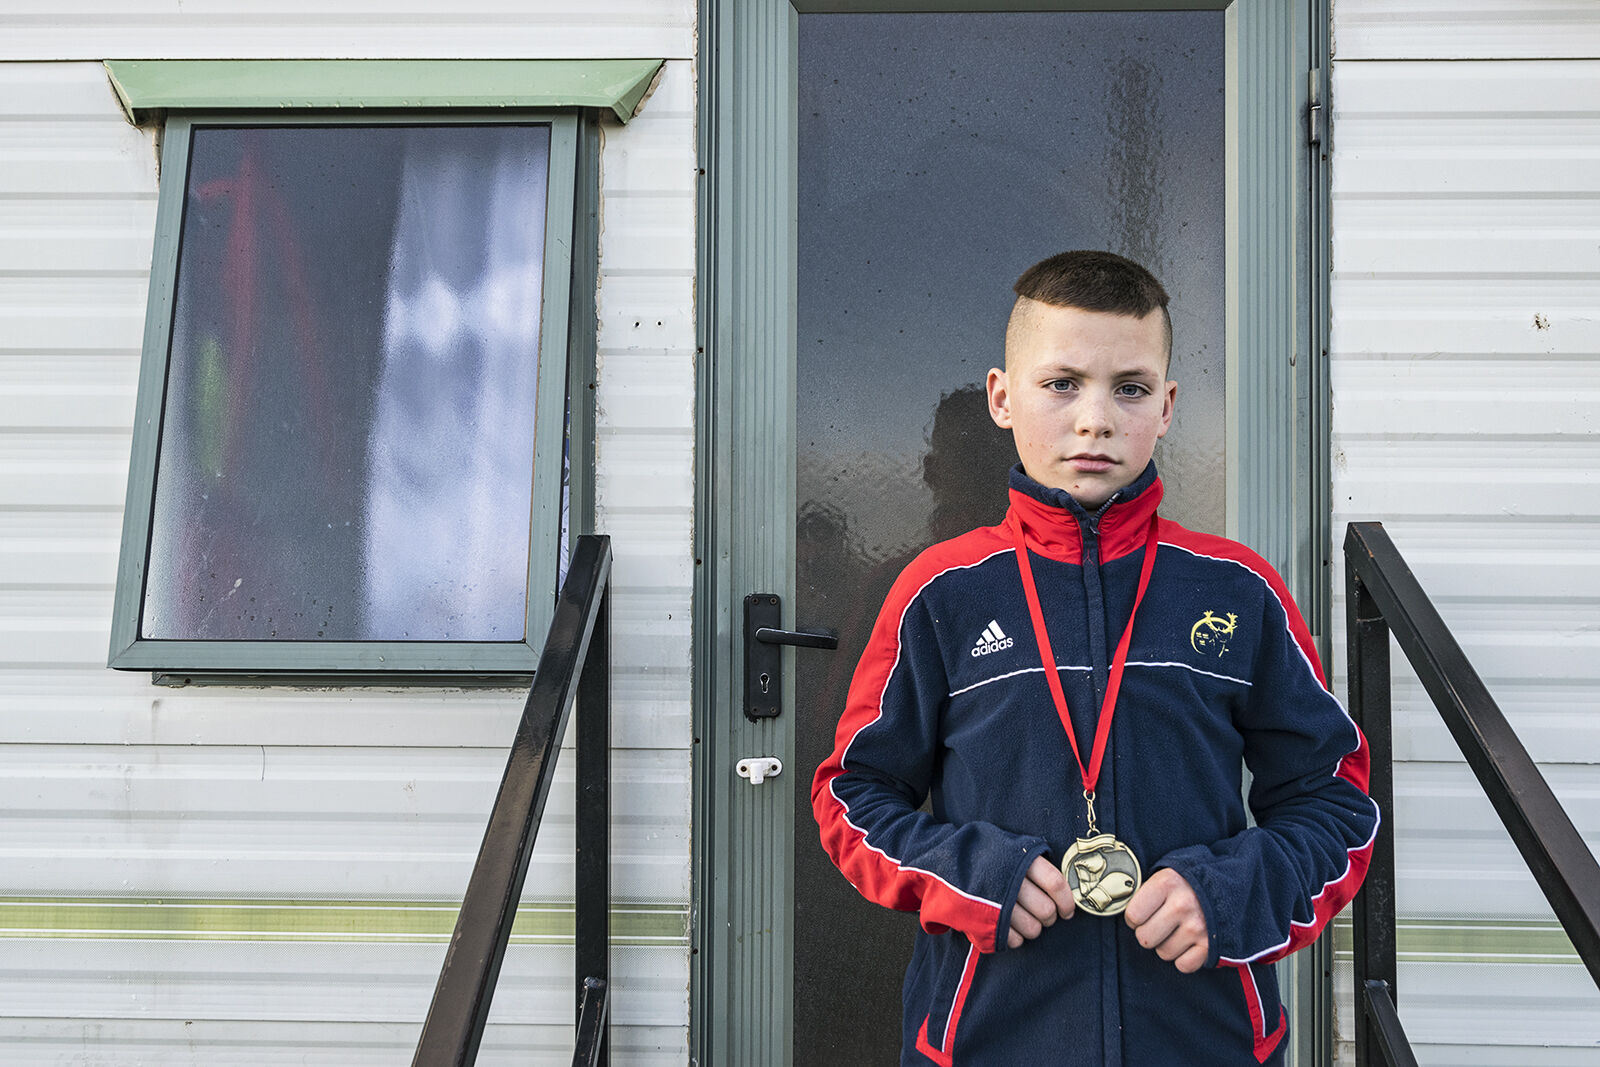 Rocky with his Boxing Medal, Tipperary, Ireland 2019